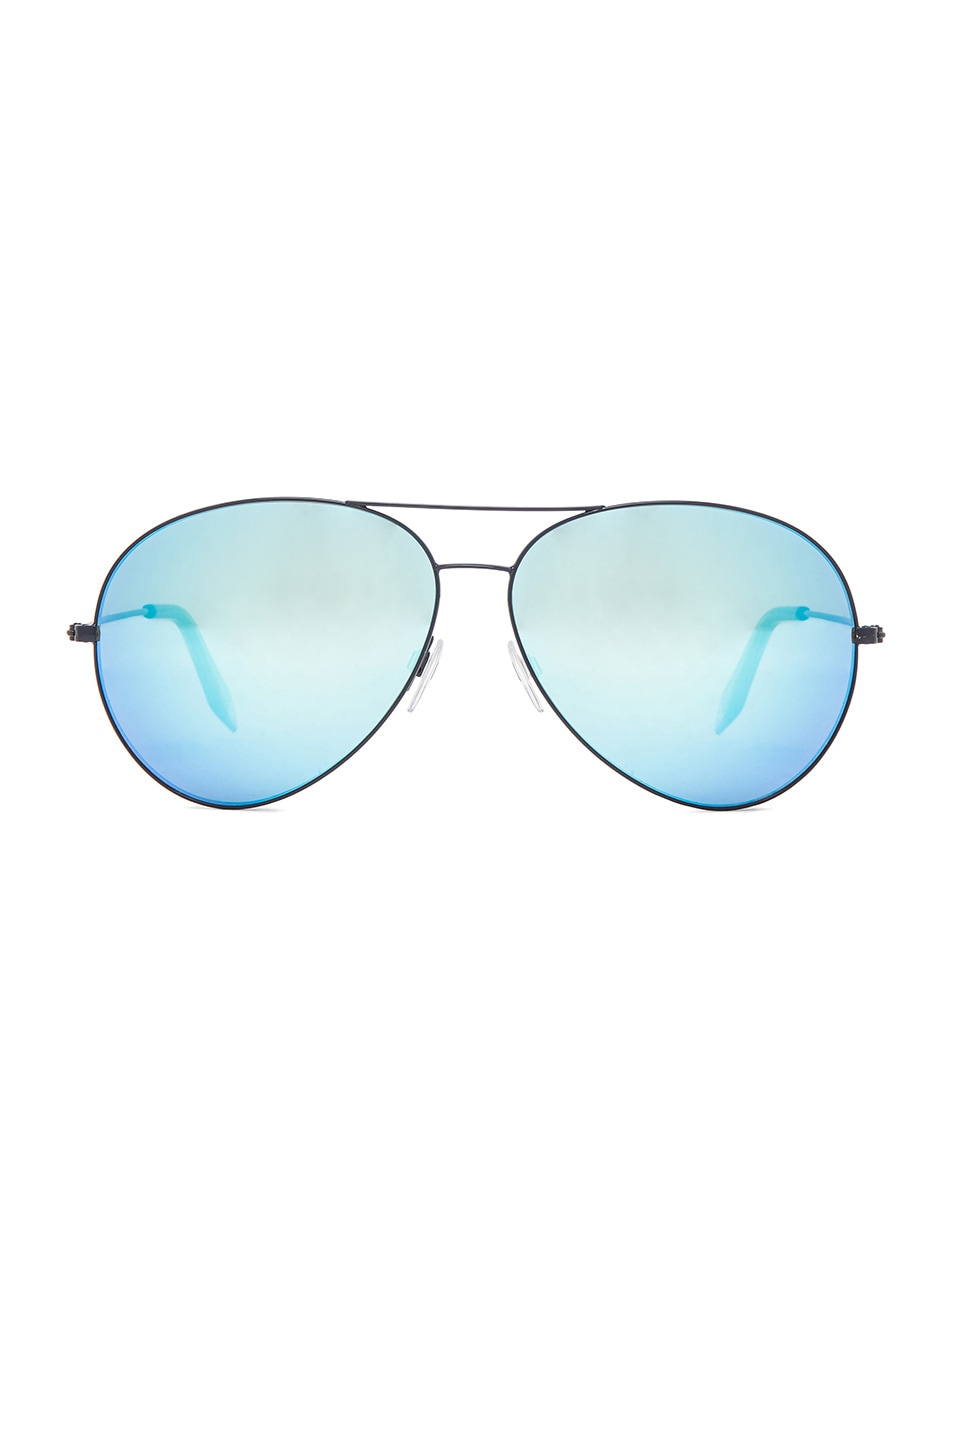 Image 1 of Victoria Beckham FWRD Exclusive Classic Aviator in Airforce Sky Blue